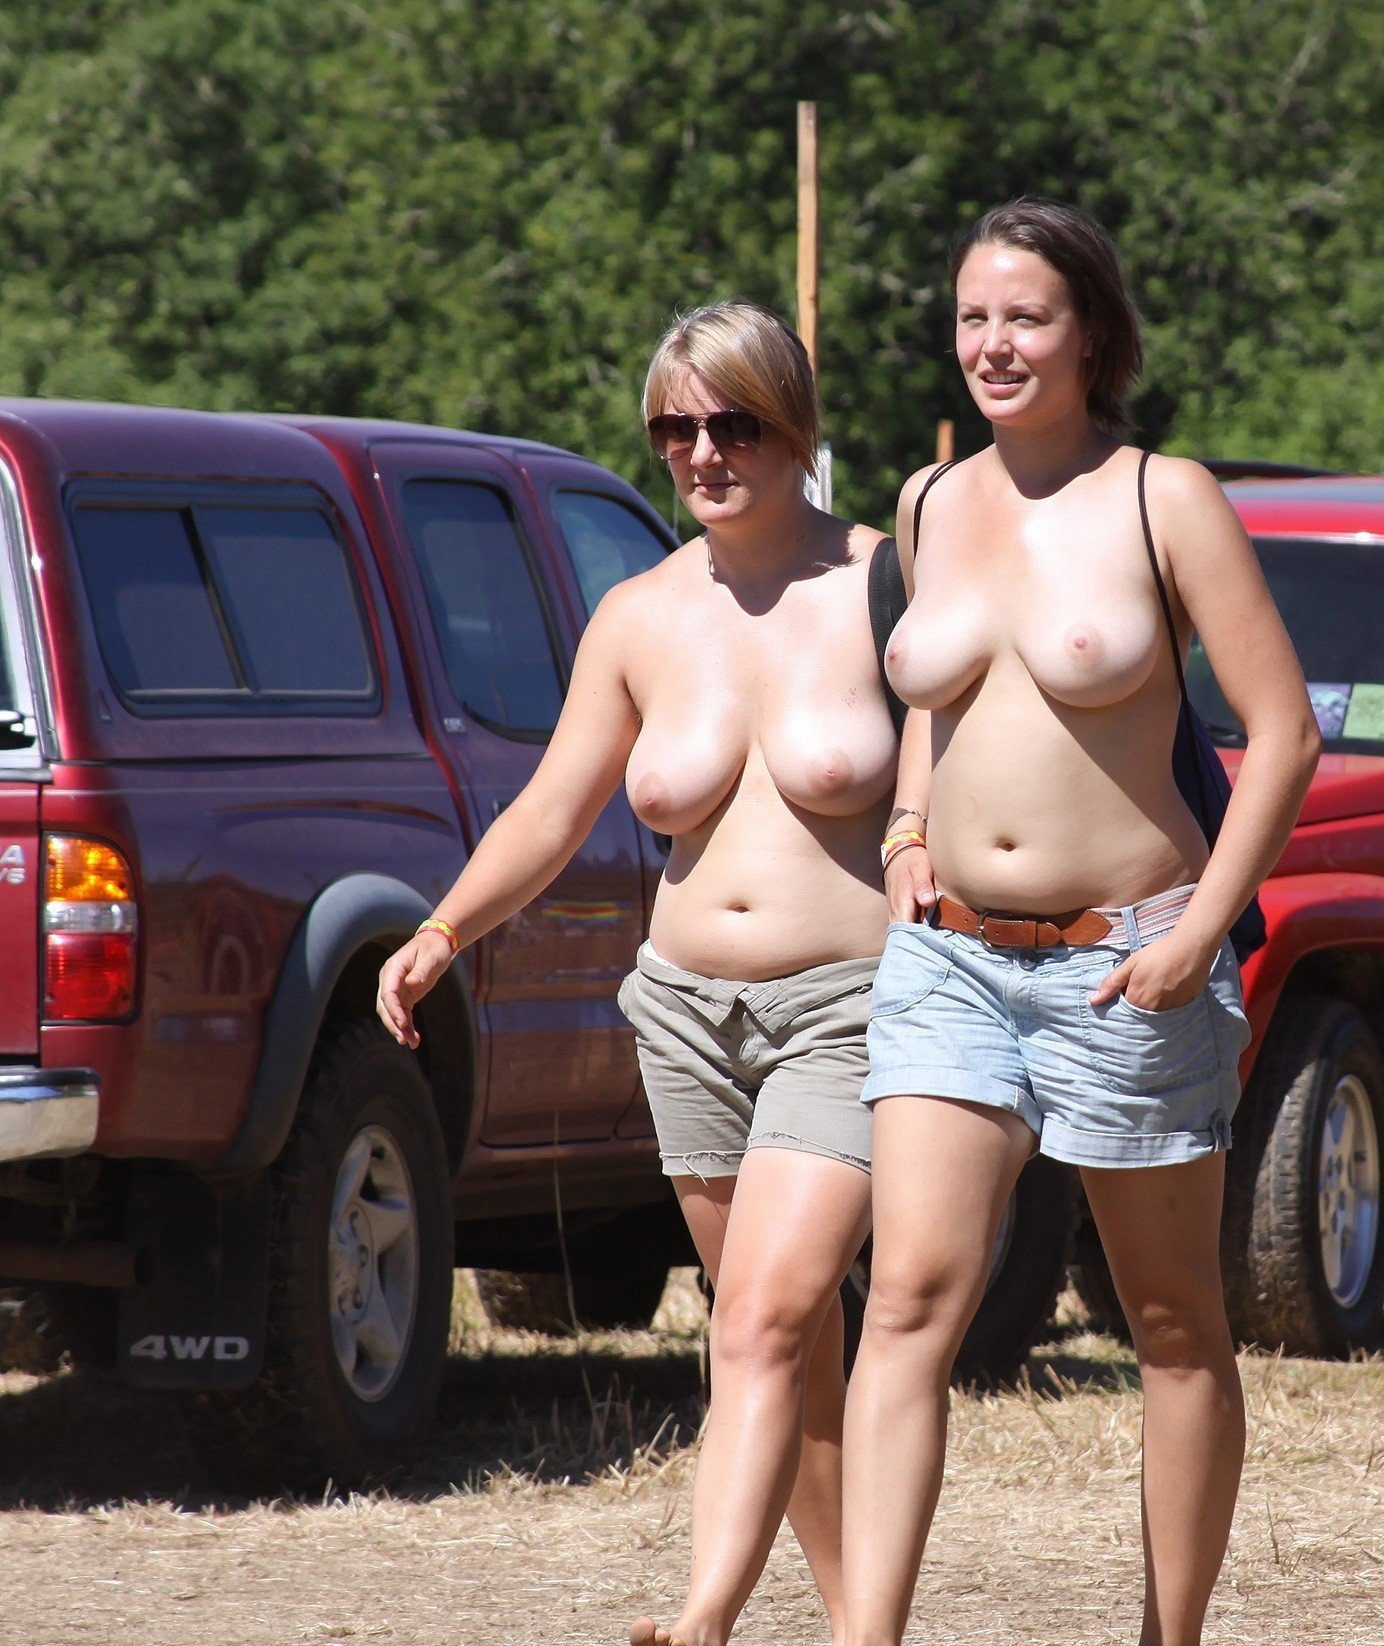 Topless wives playing with their tits scott desnuda